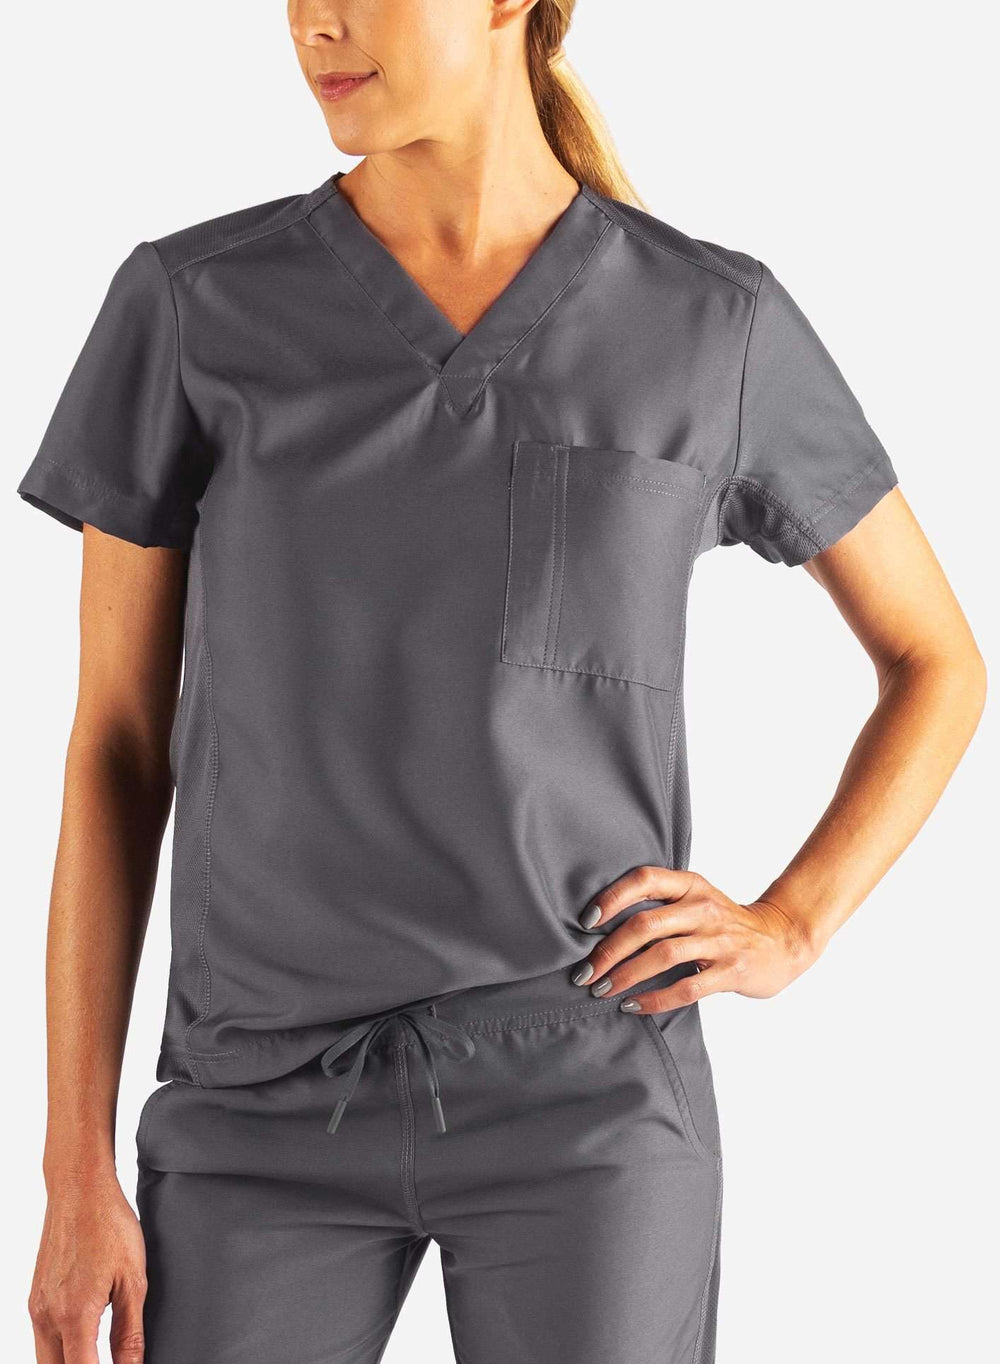 Women's Tuckable Scrub Top in Dark Grey Front